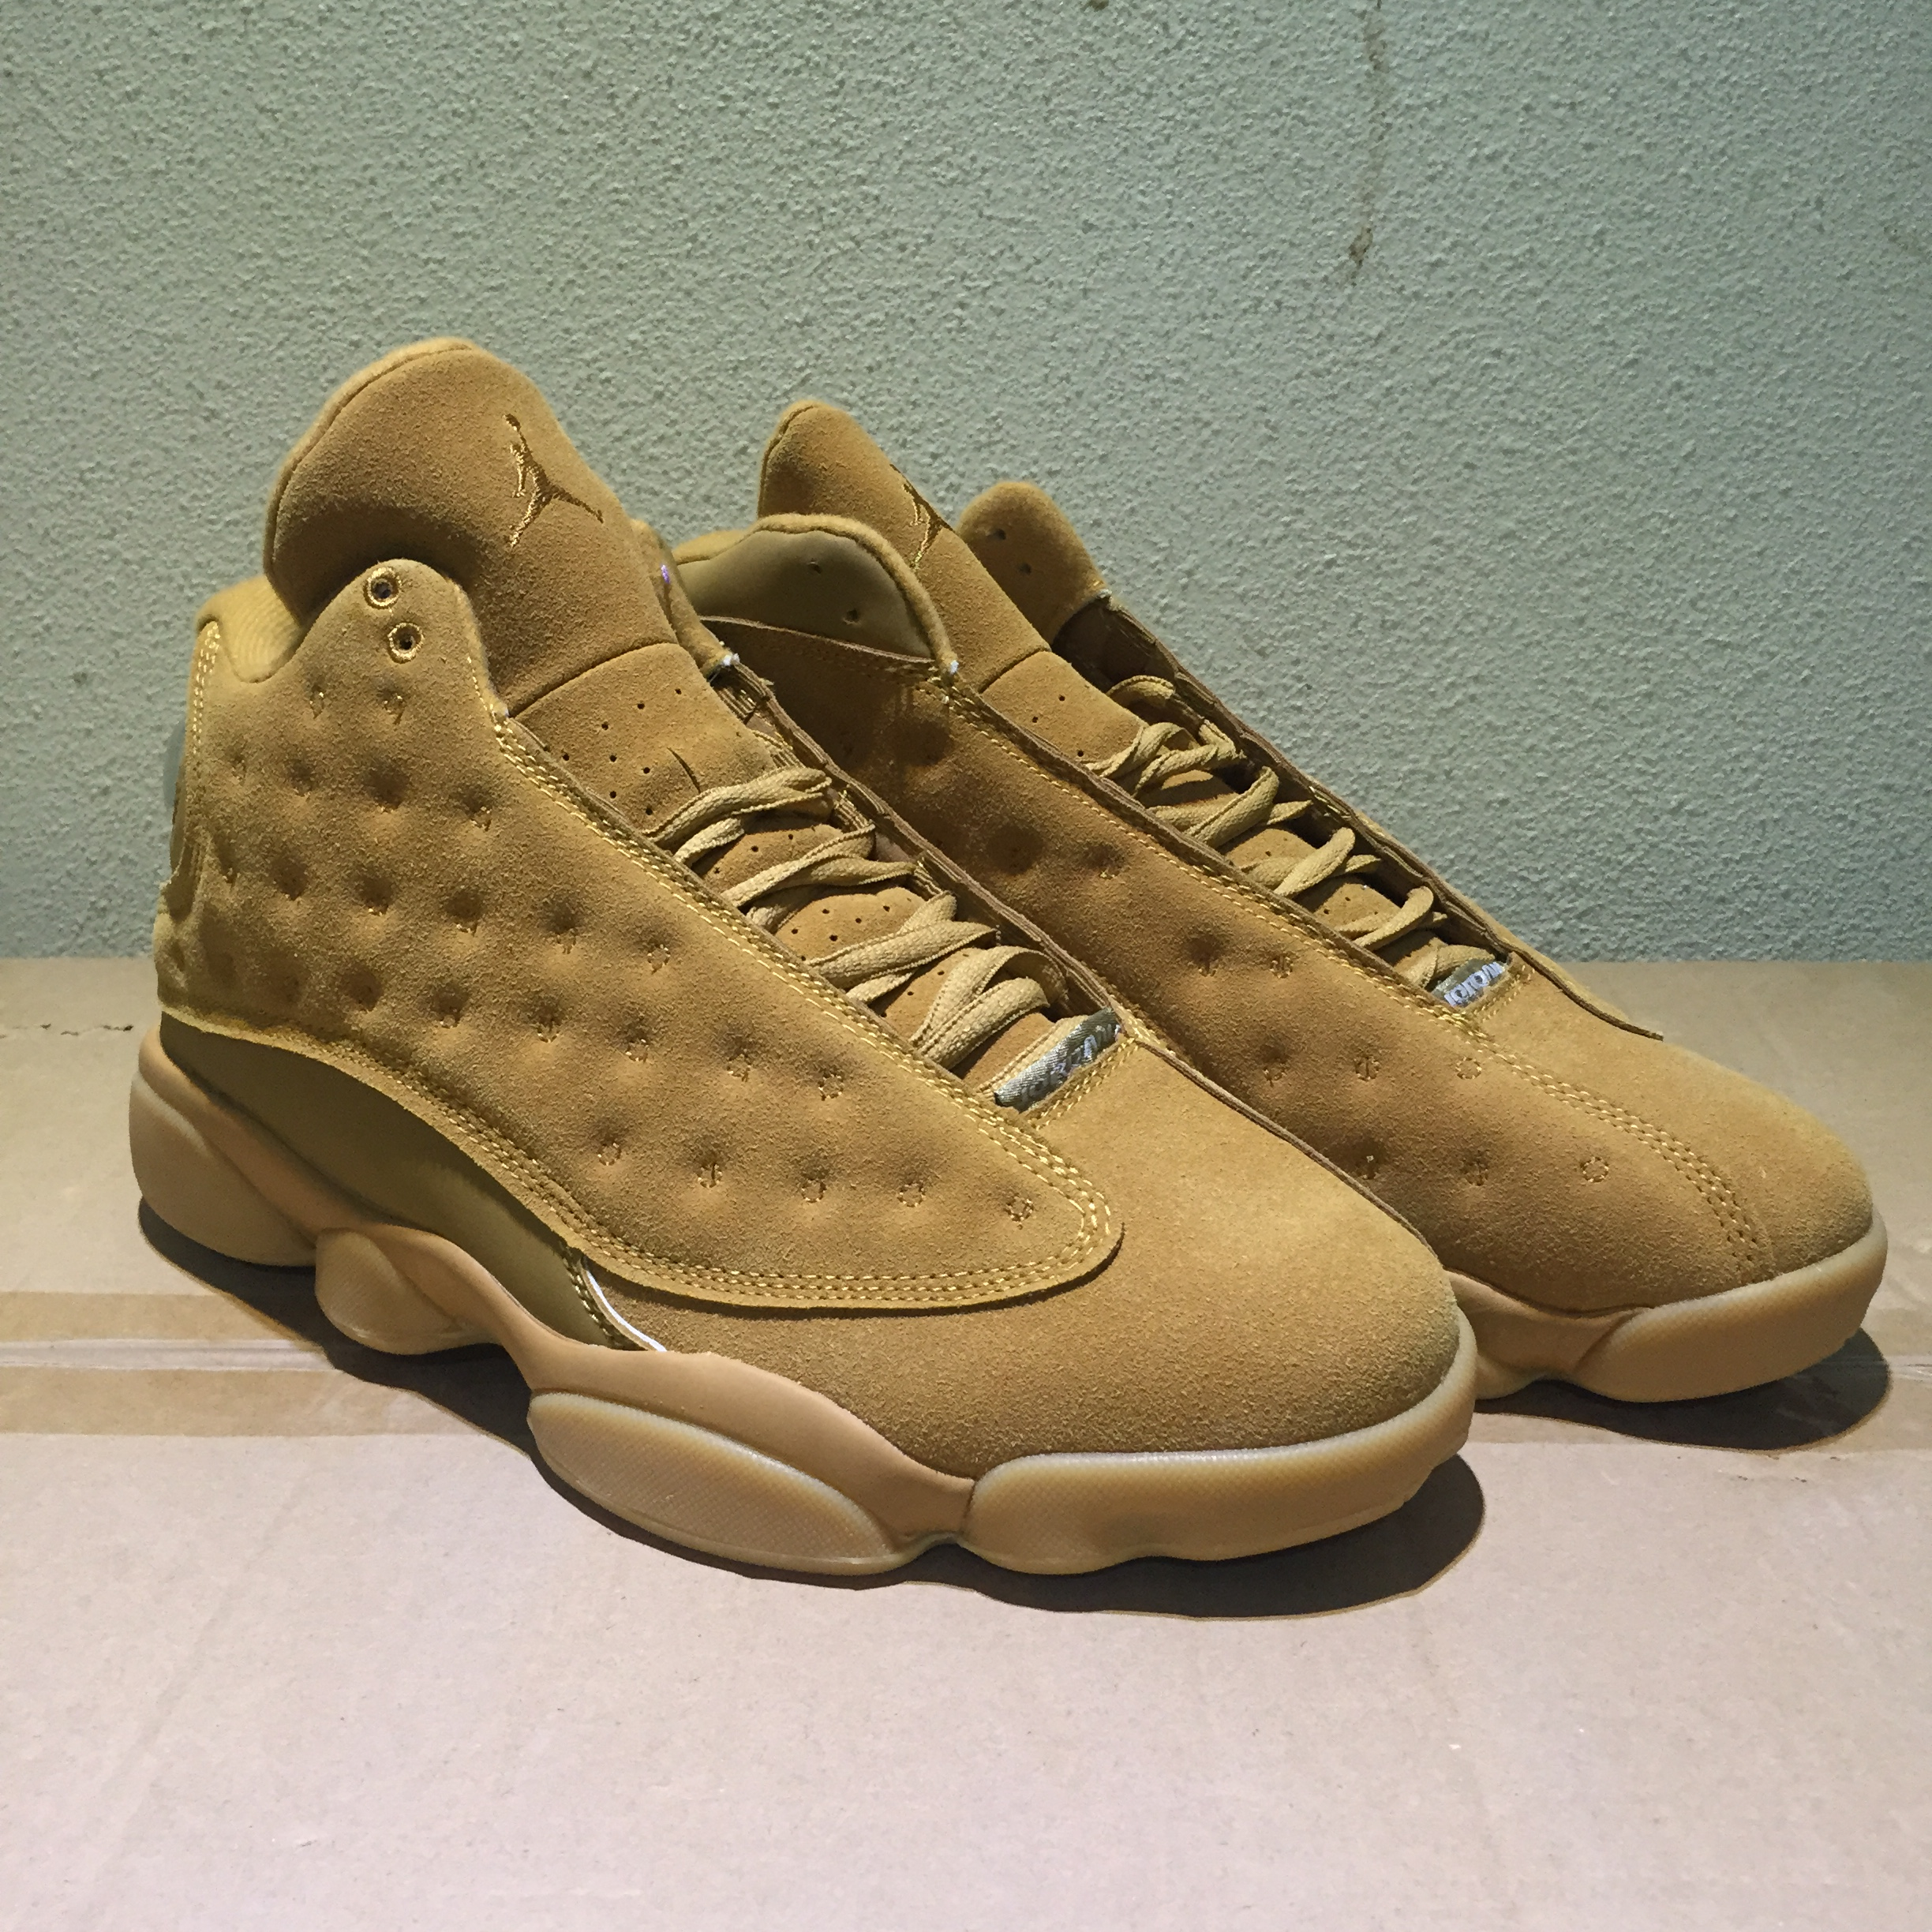 2017 Men Air Jordan 13 All Wheat Yellow Shoes